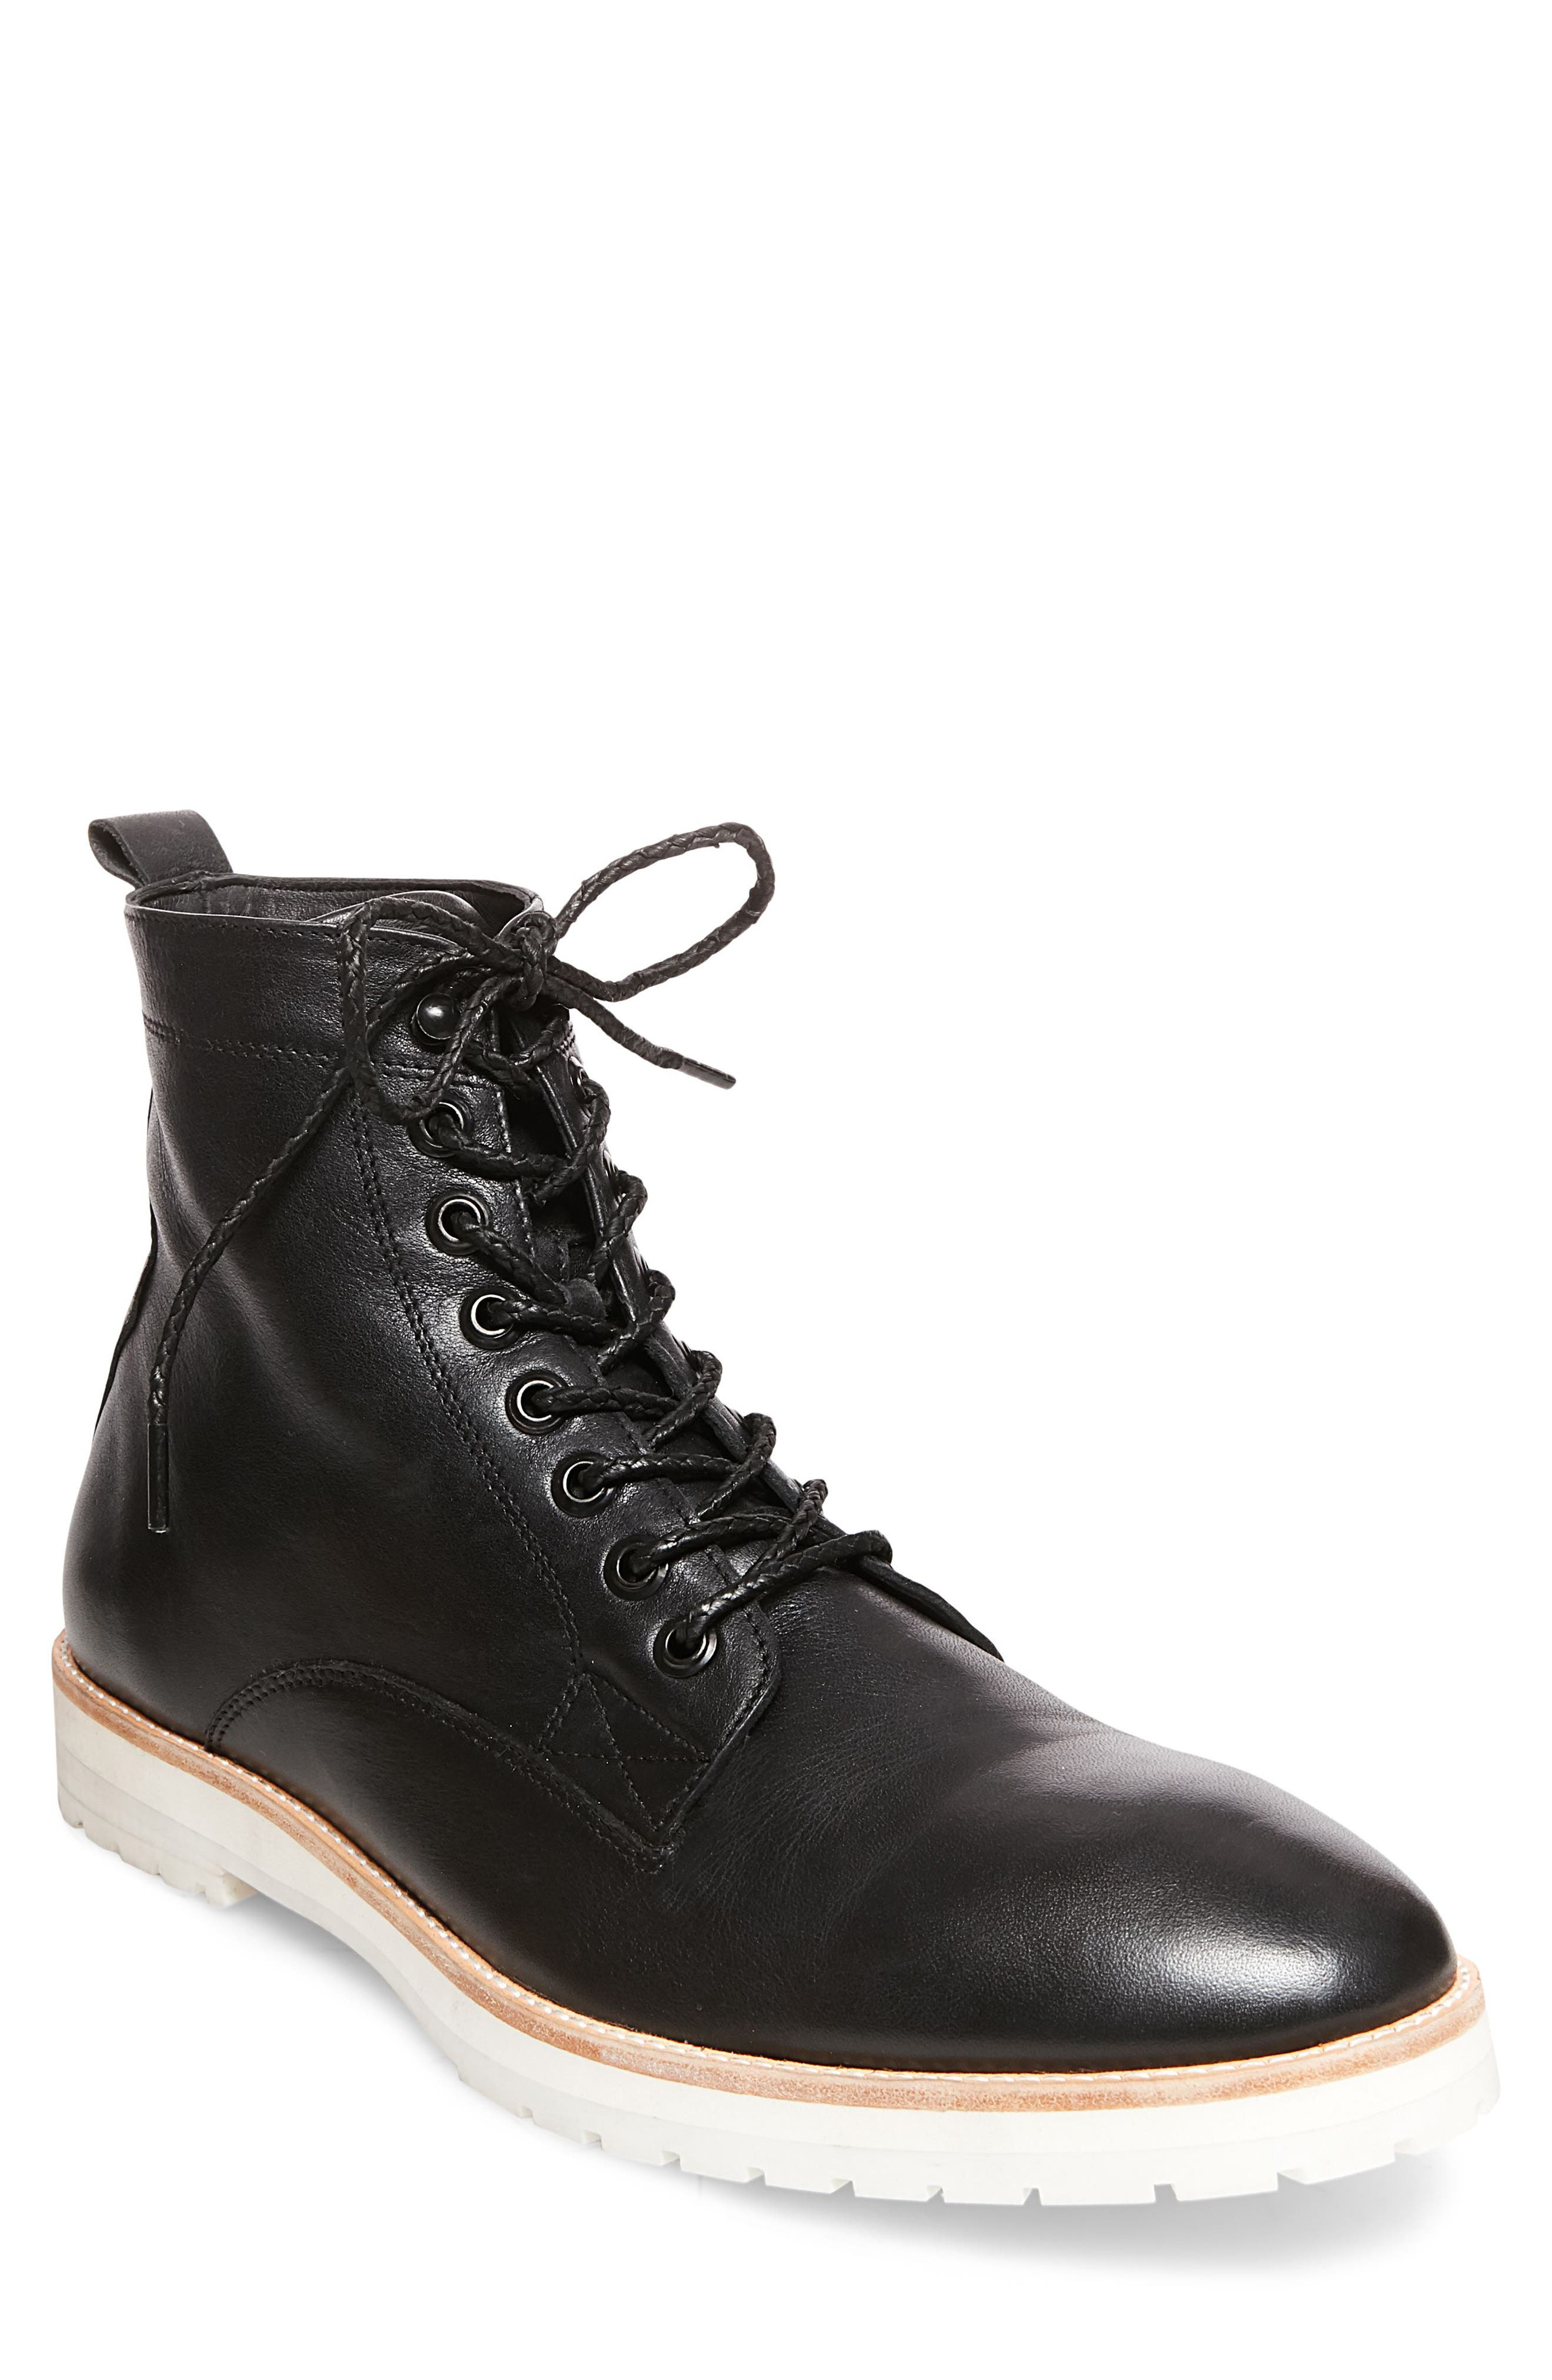 Alternate Image 1 Selected - Steve Madden x GQ Andre Plain Toe Boot (Men)